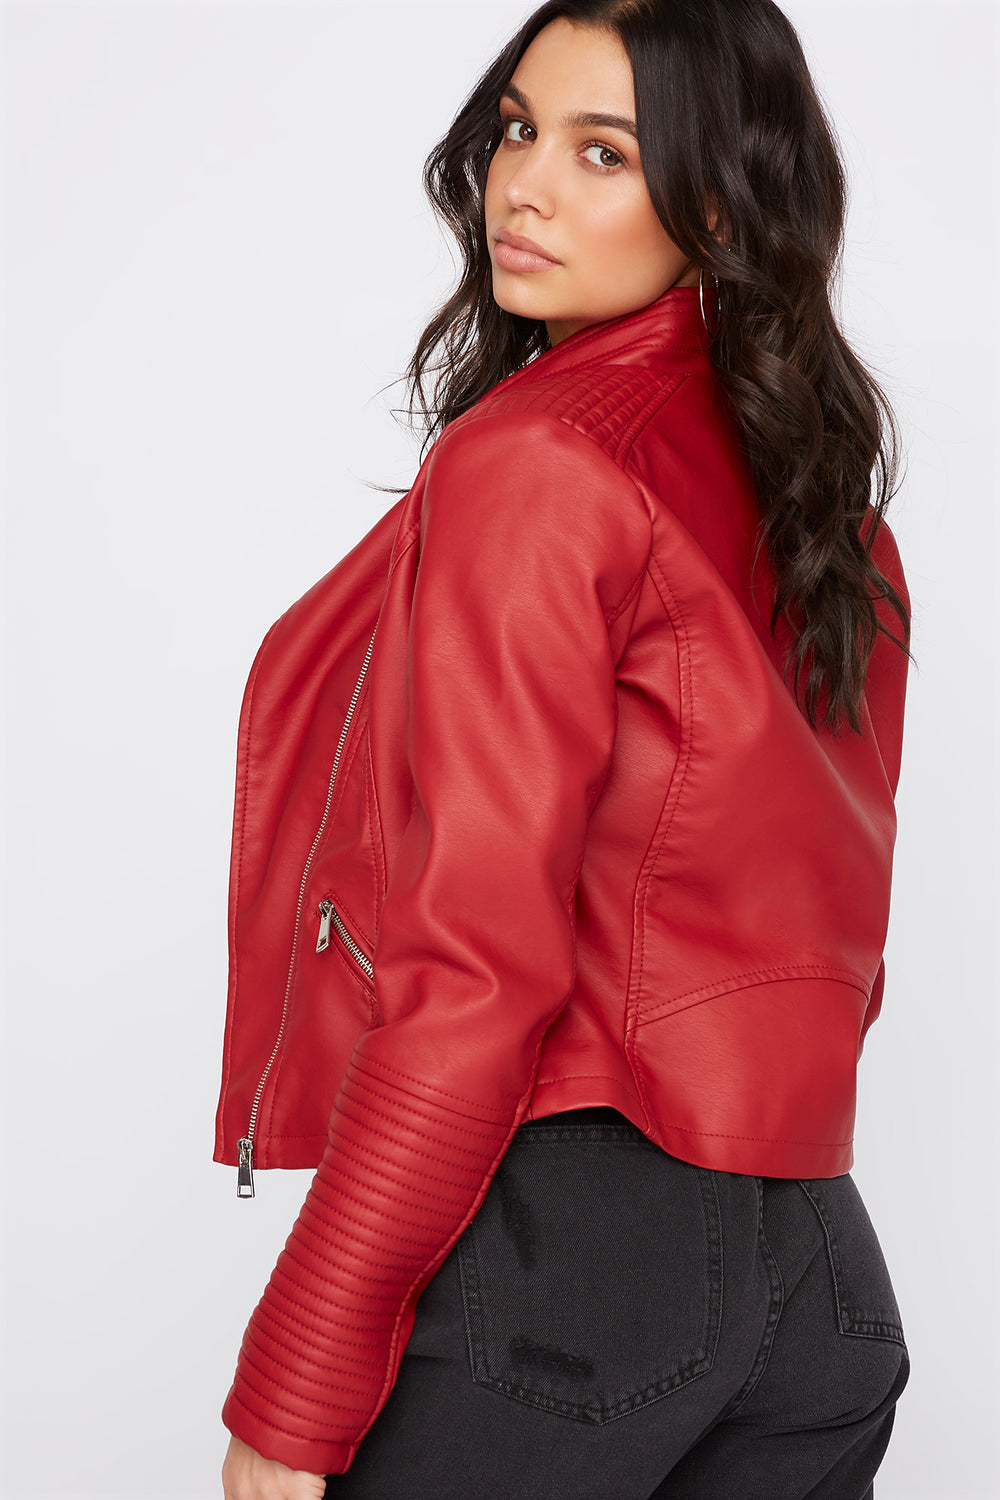 Ribbed Sleeve Faux Leather Jacket Red